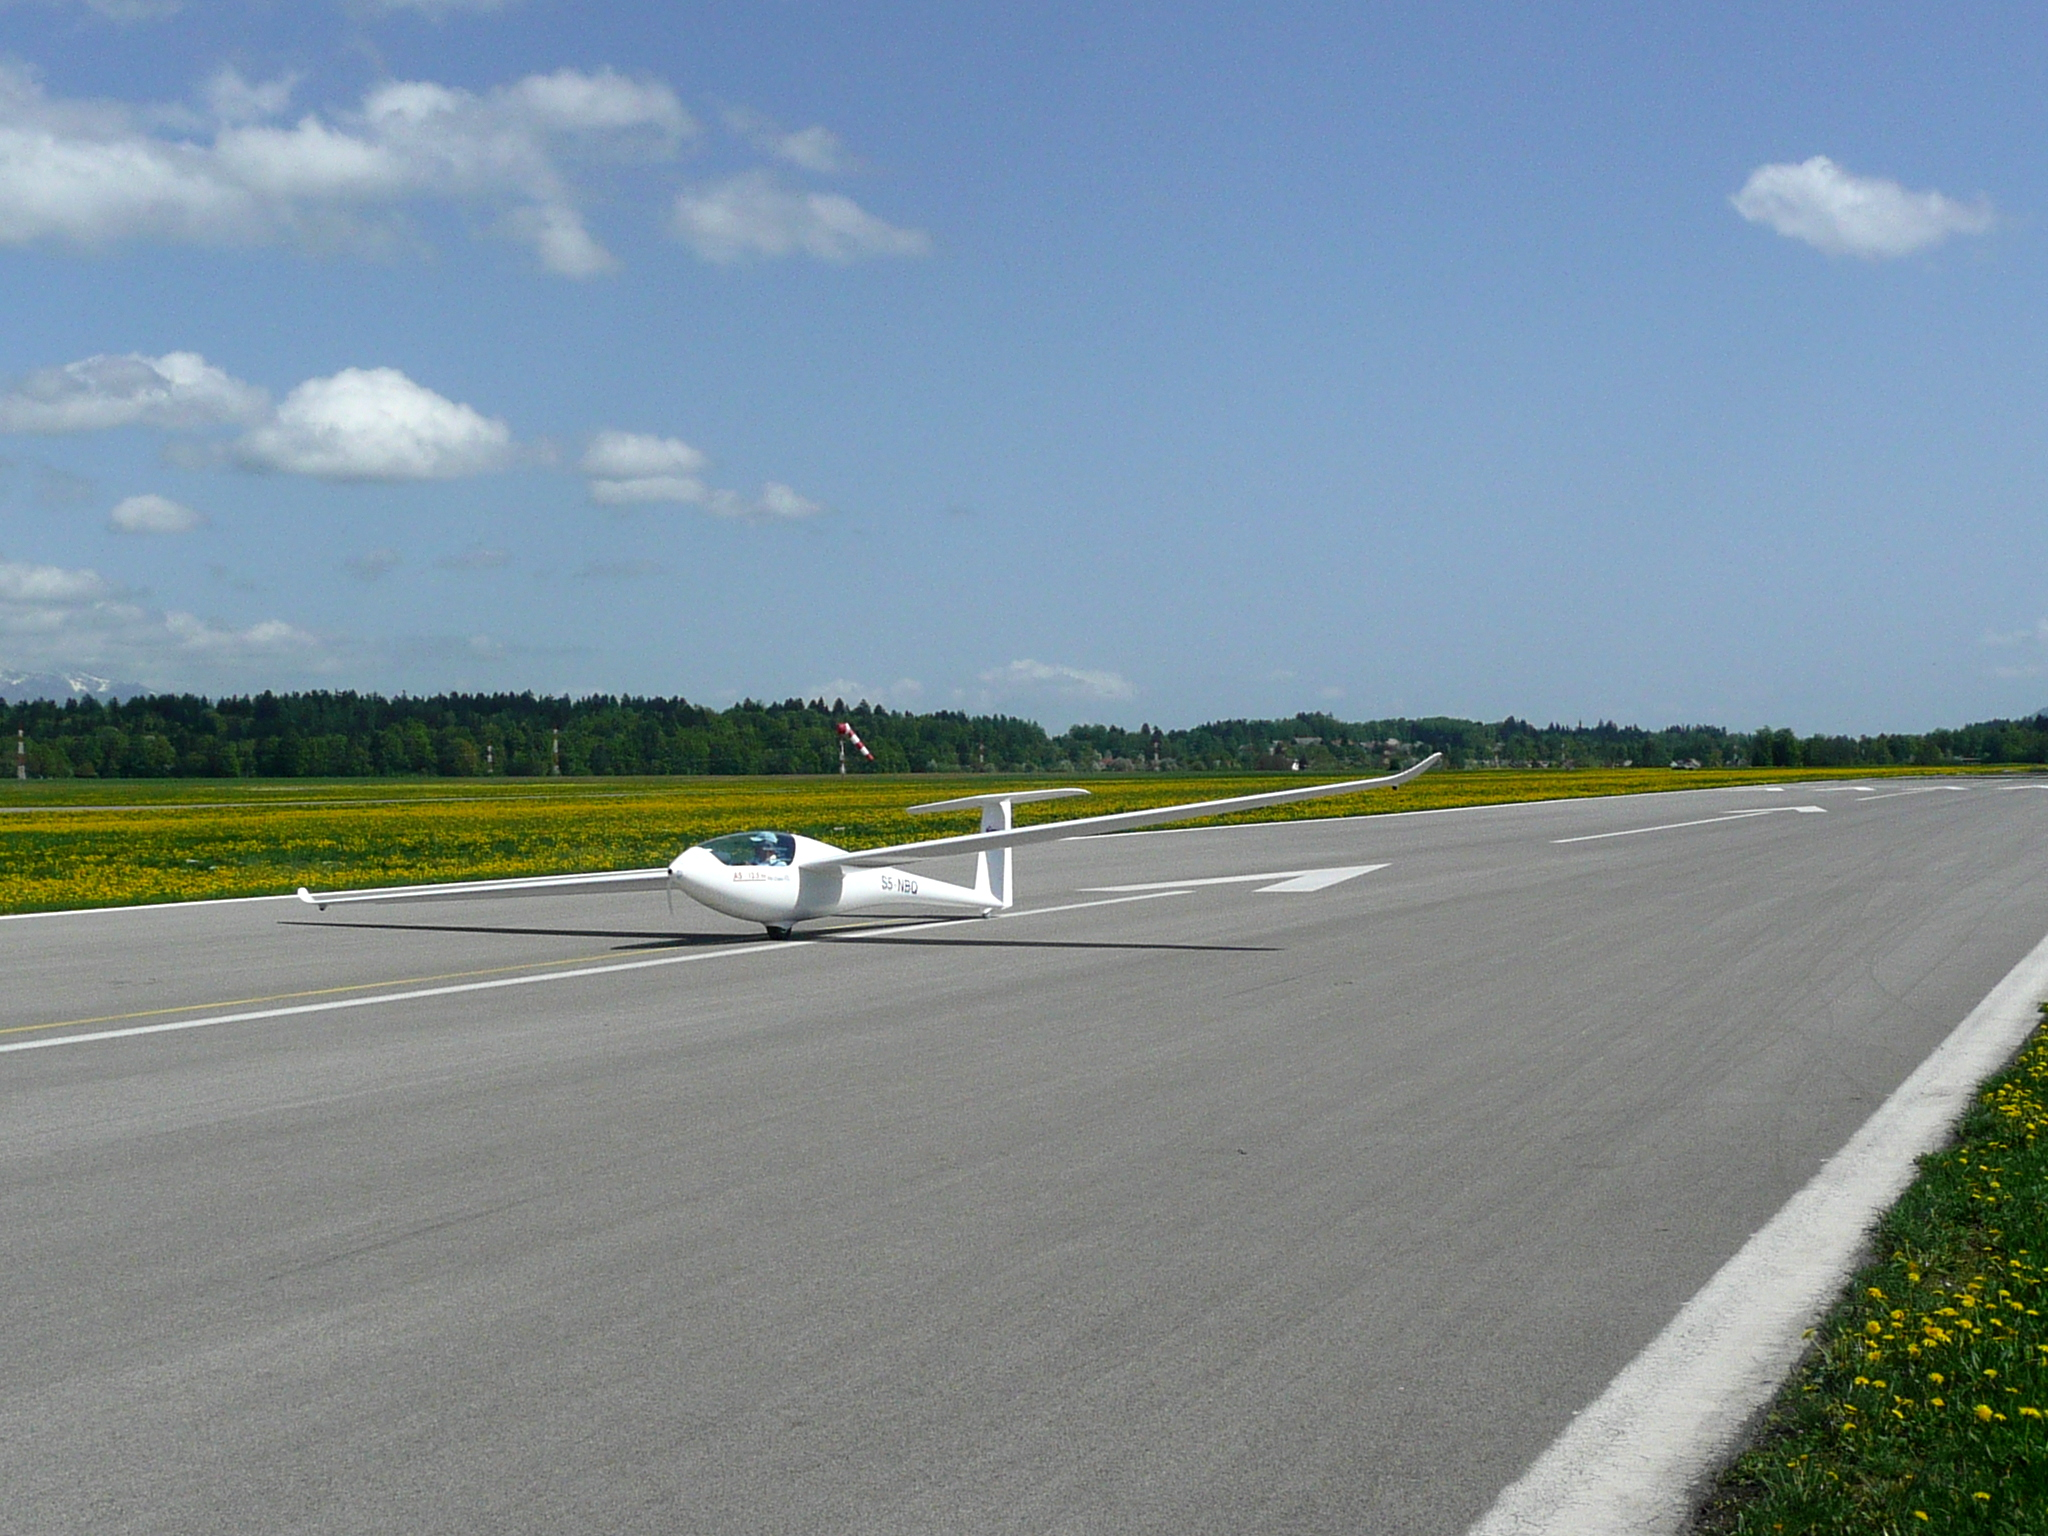 Albastar single seat glider AS 13,5 m FAI - perfect wing profile